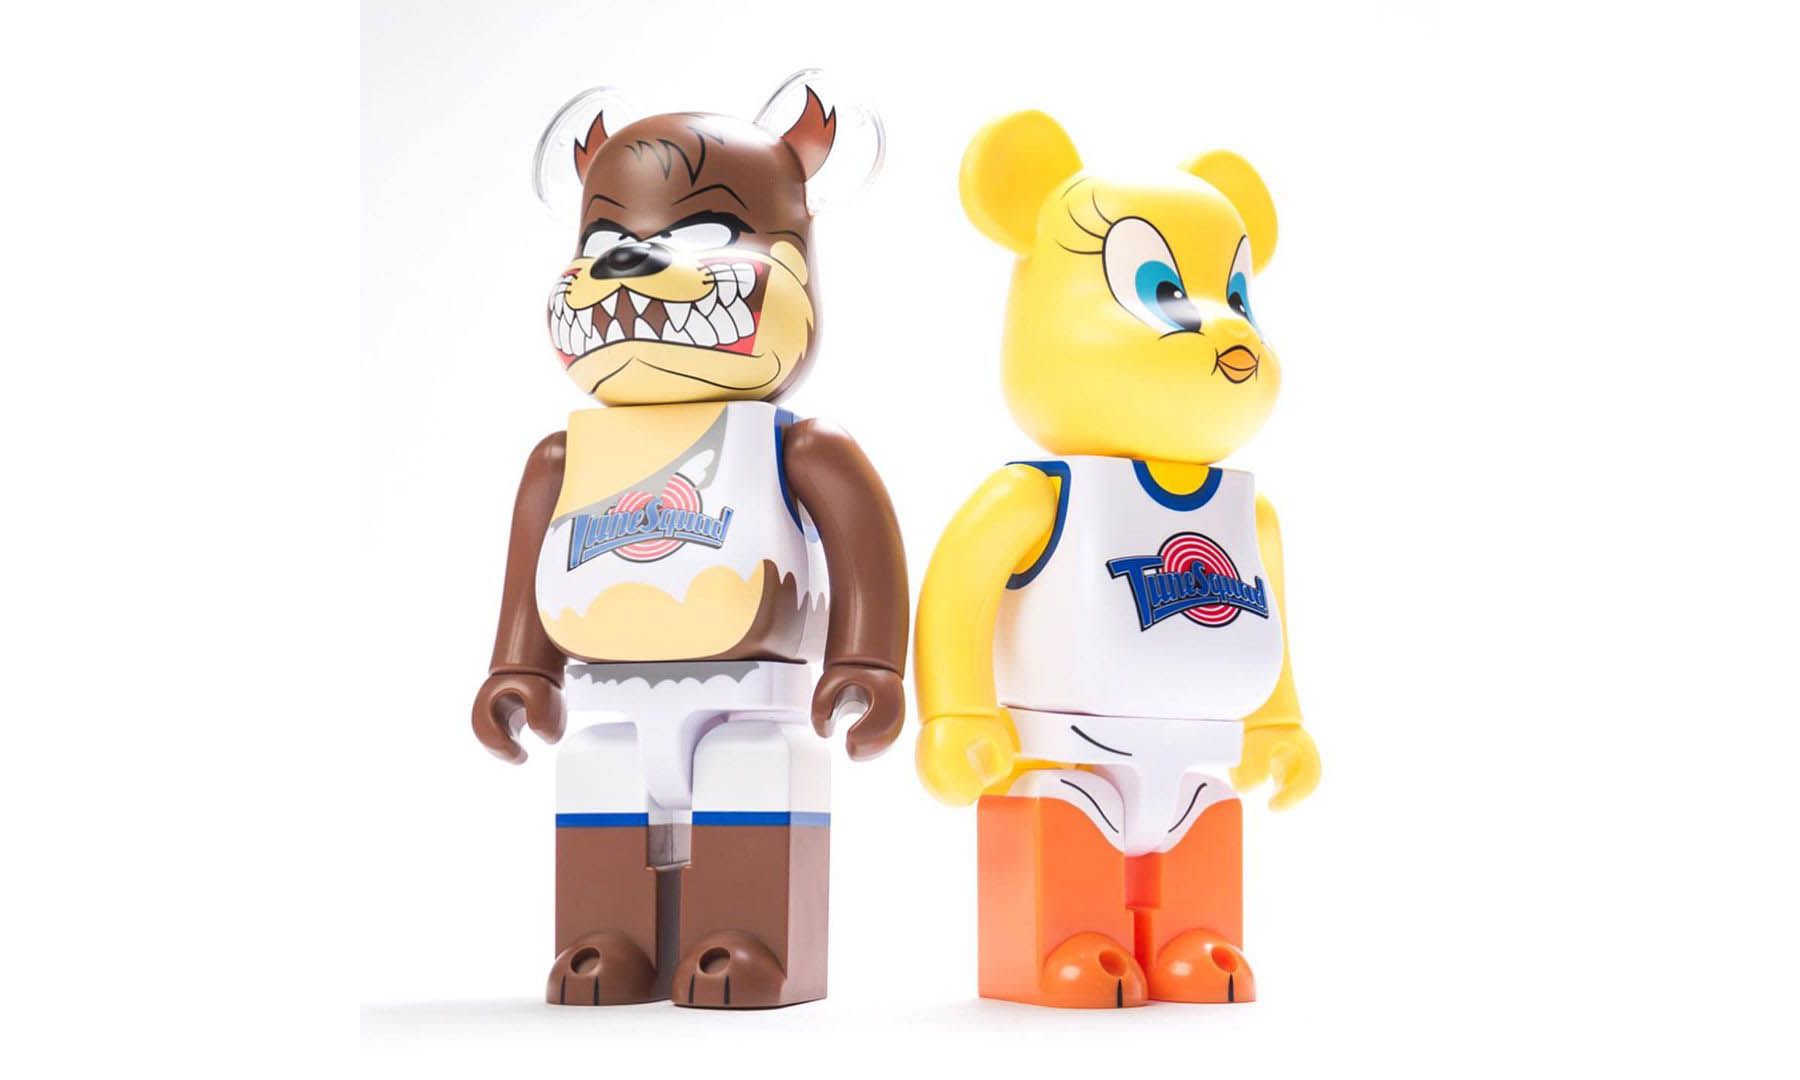 MEDICOM TOY x《Space Jam》BE@RBRICK 玩偶系列发售